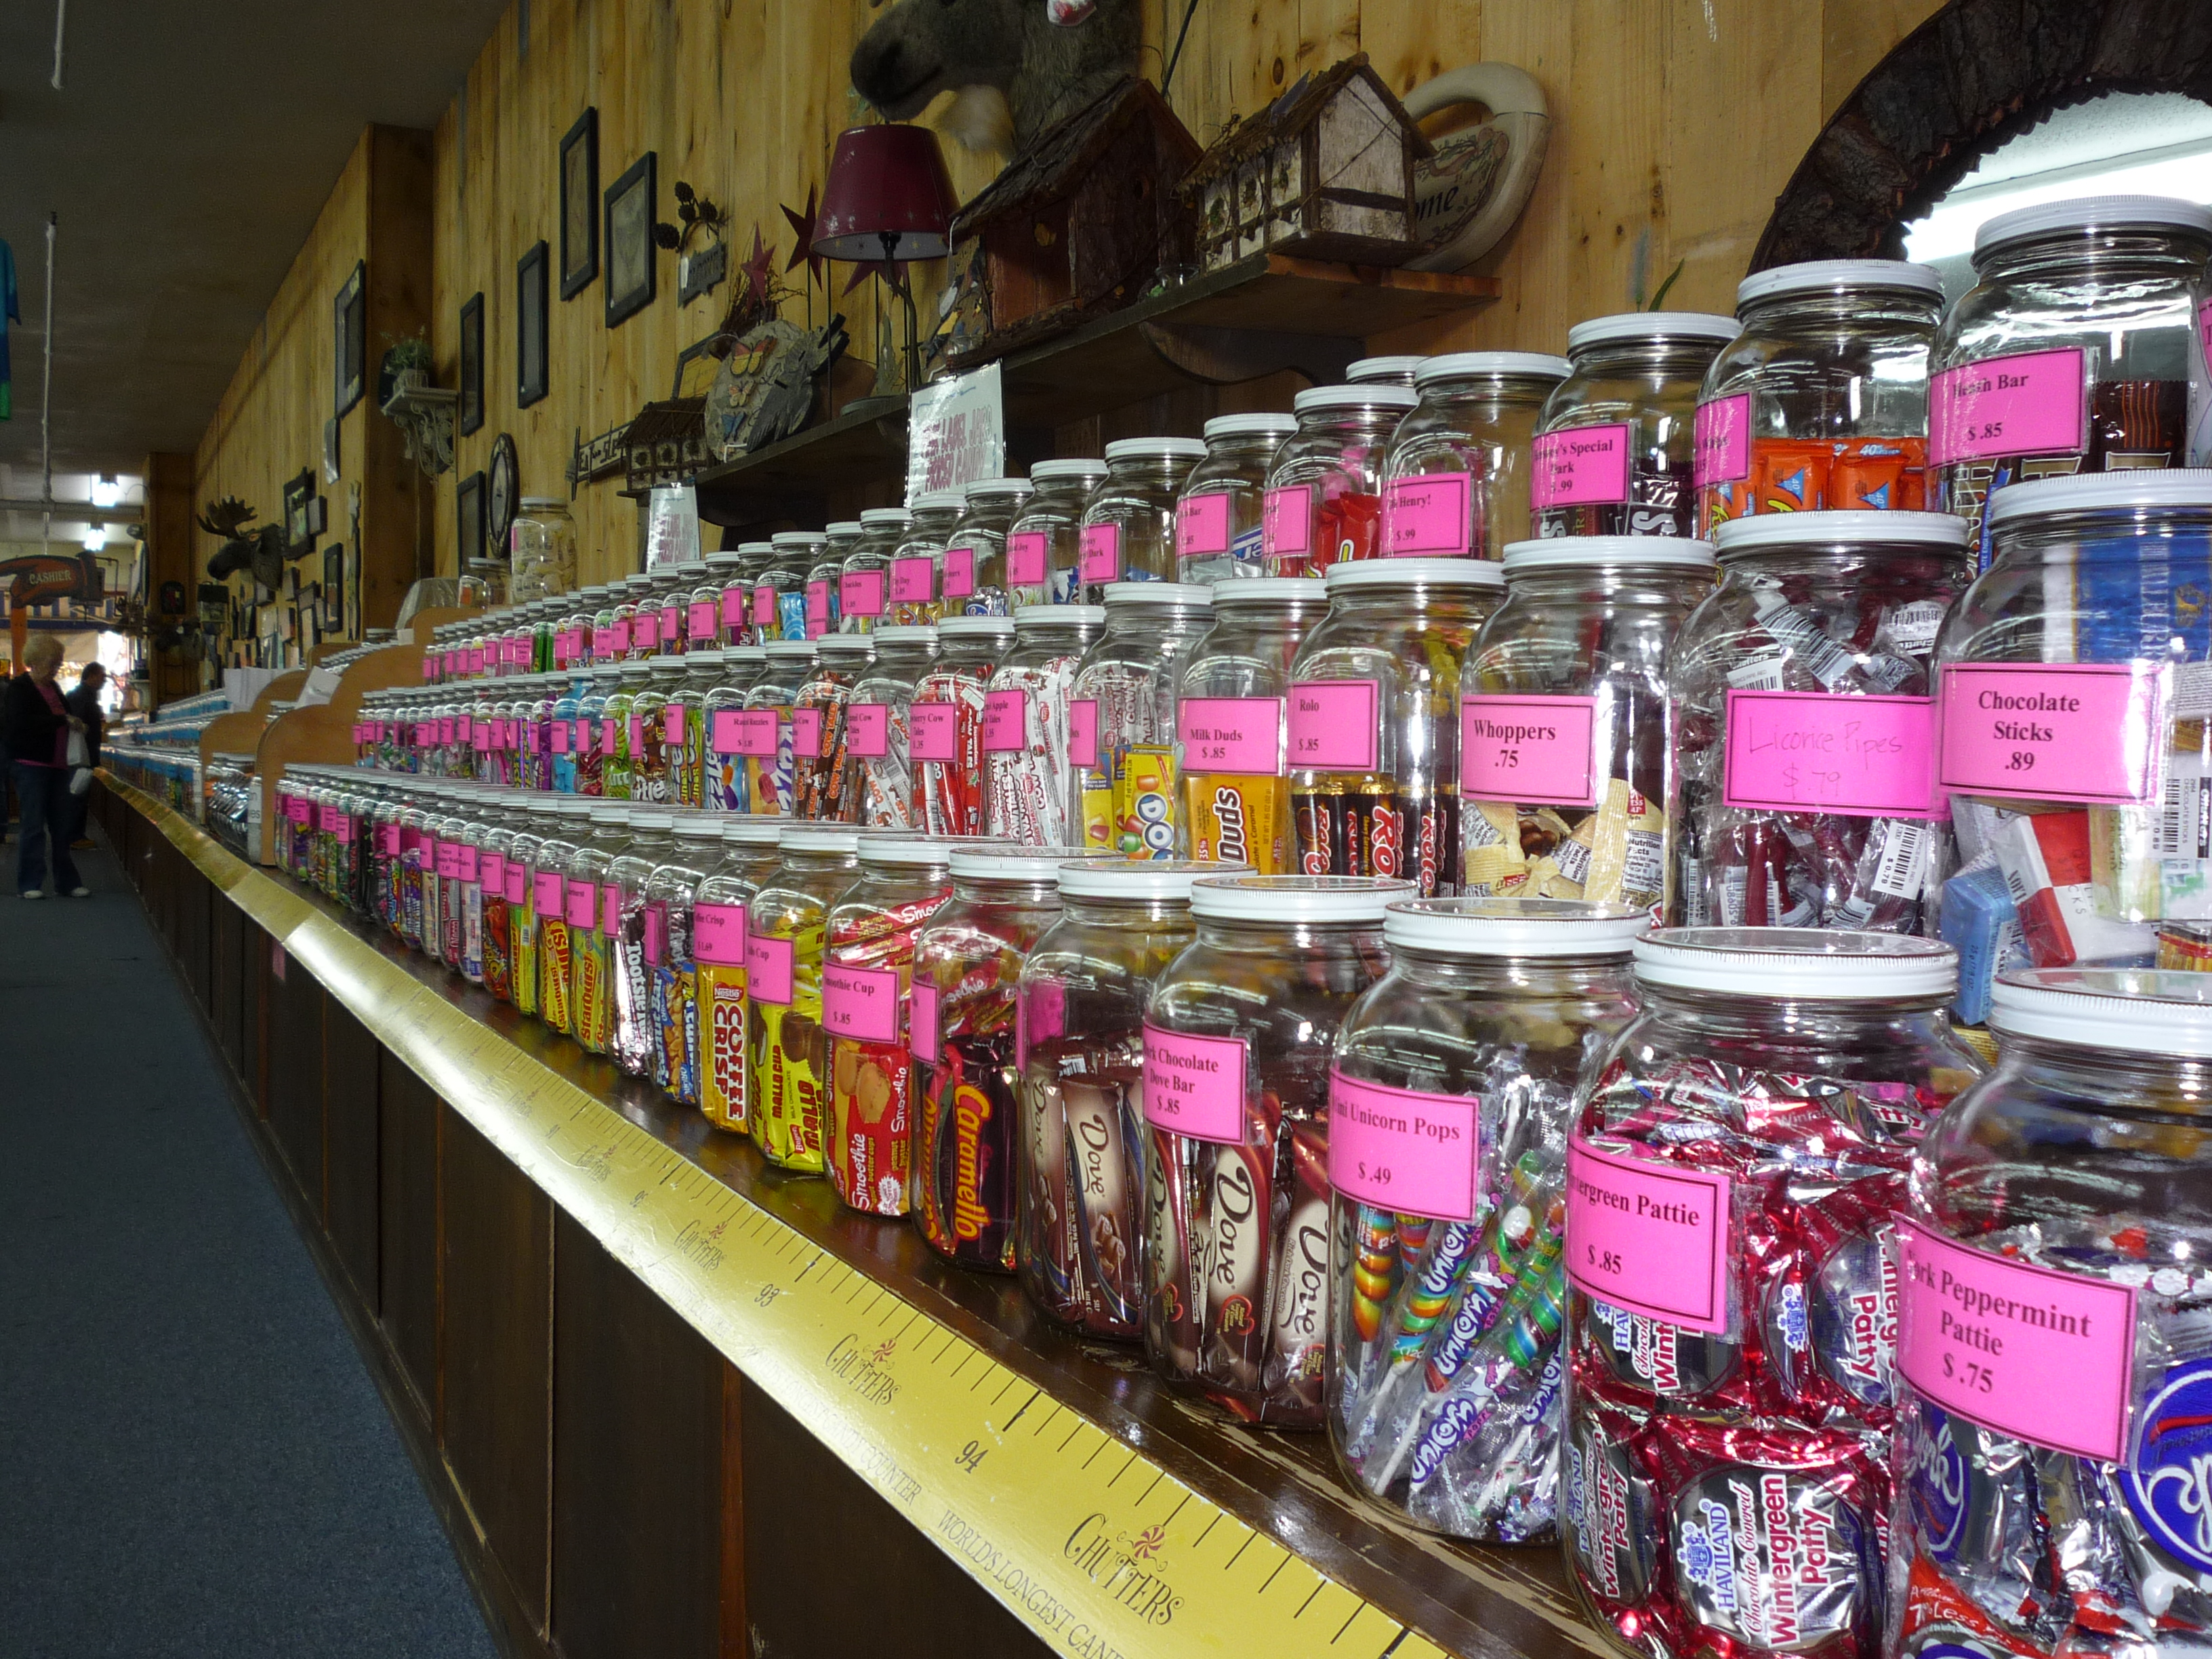 Chutters in Littleton, N.H., Features the Longest Candy Counter in the World